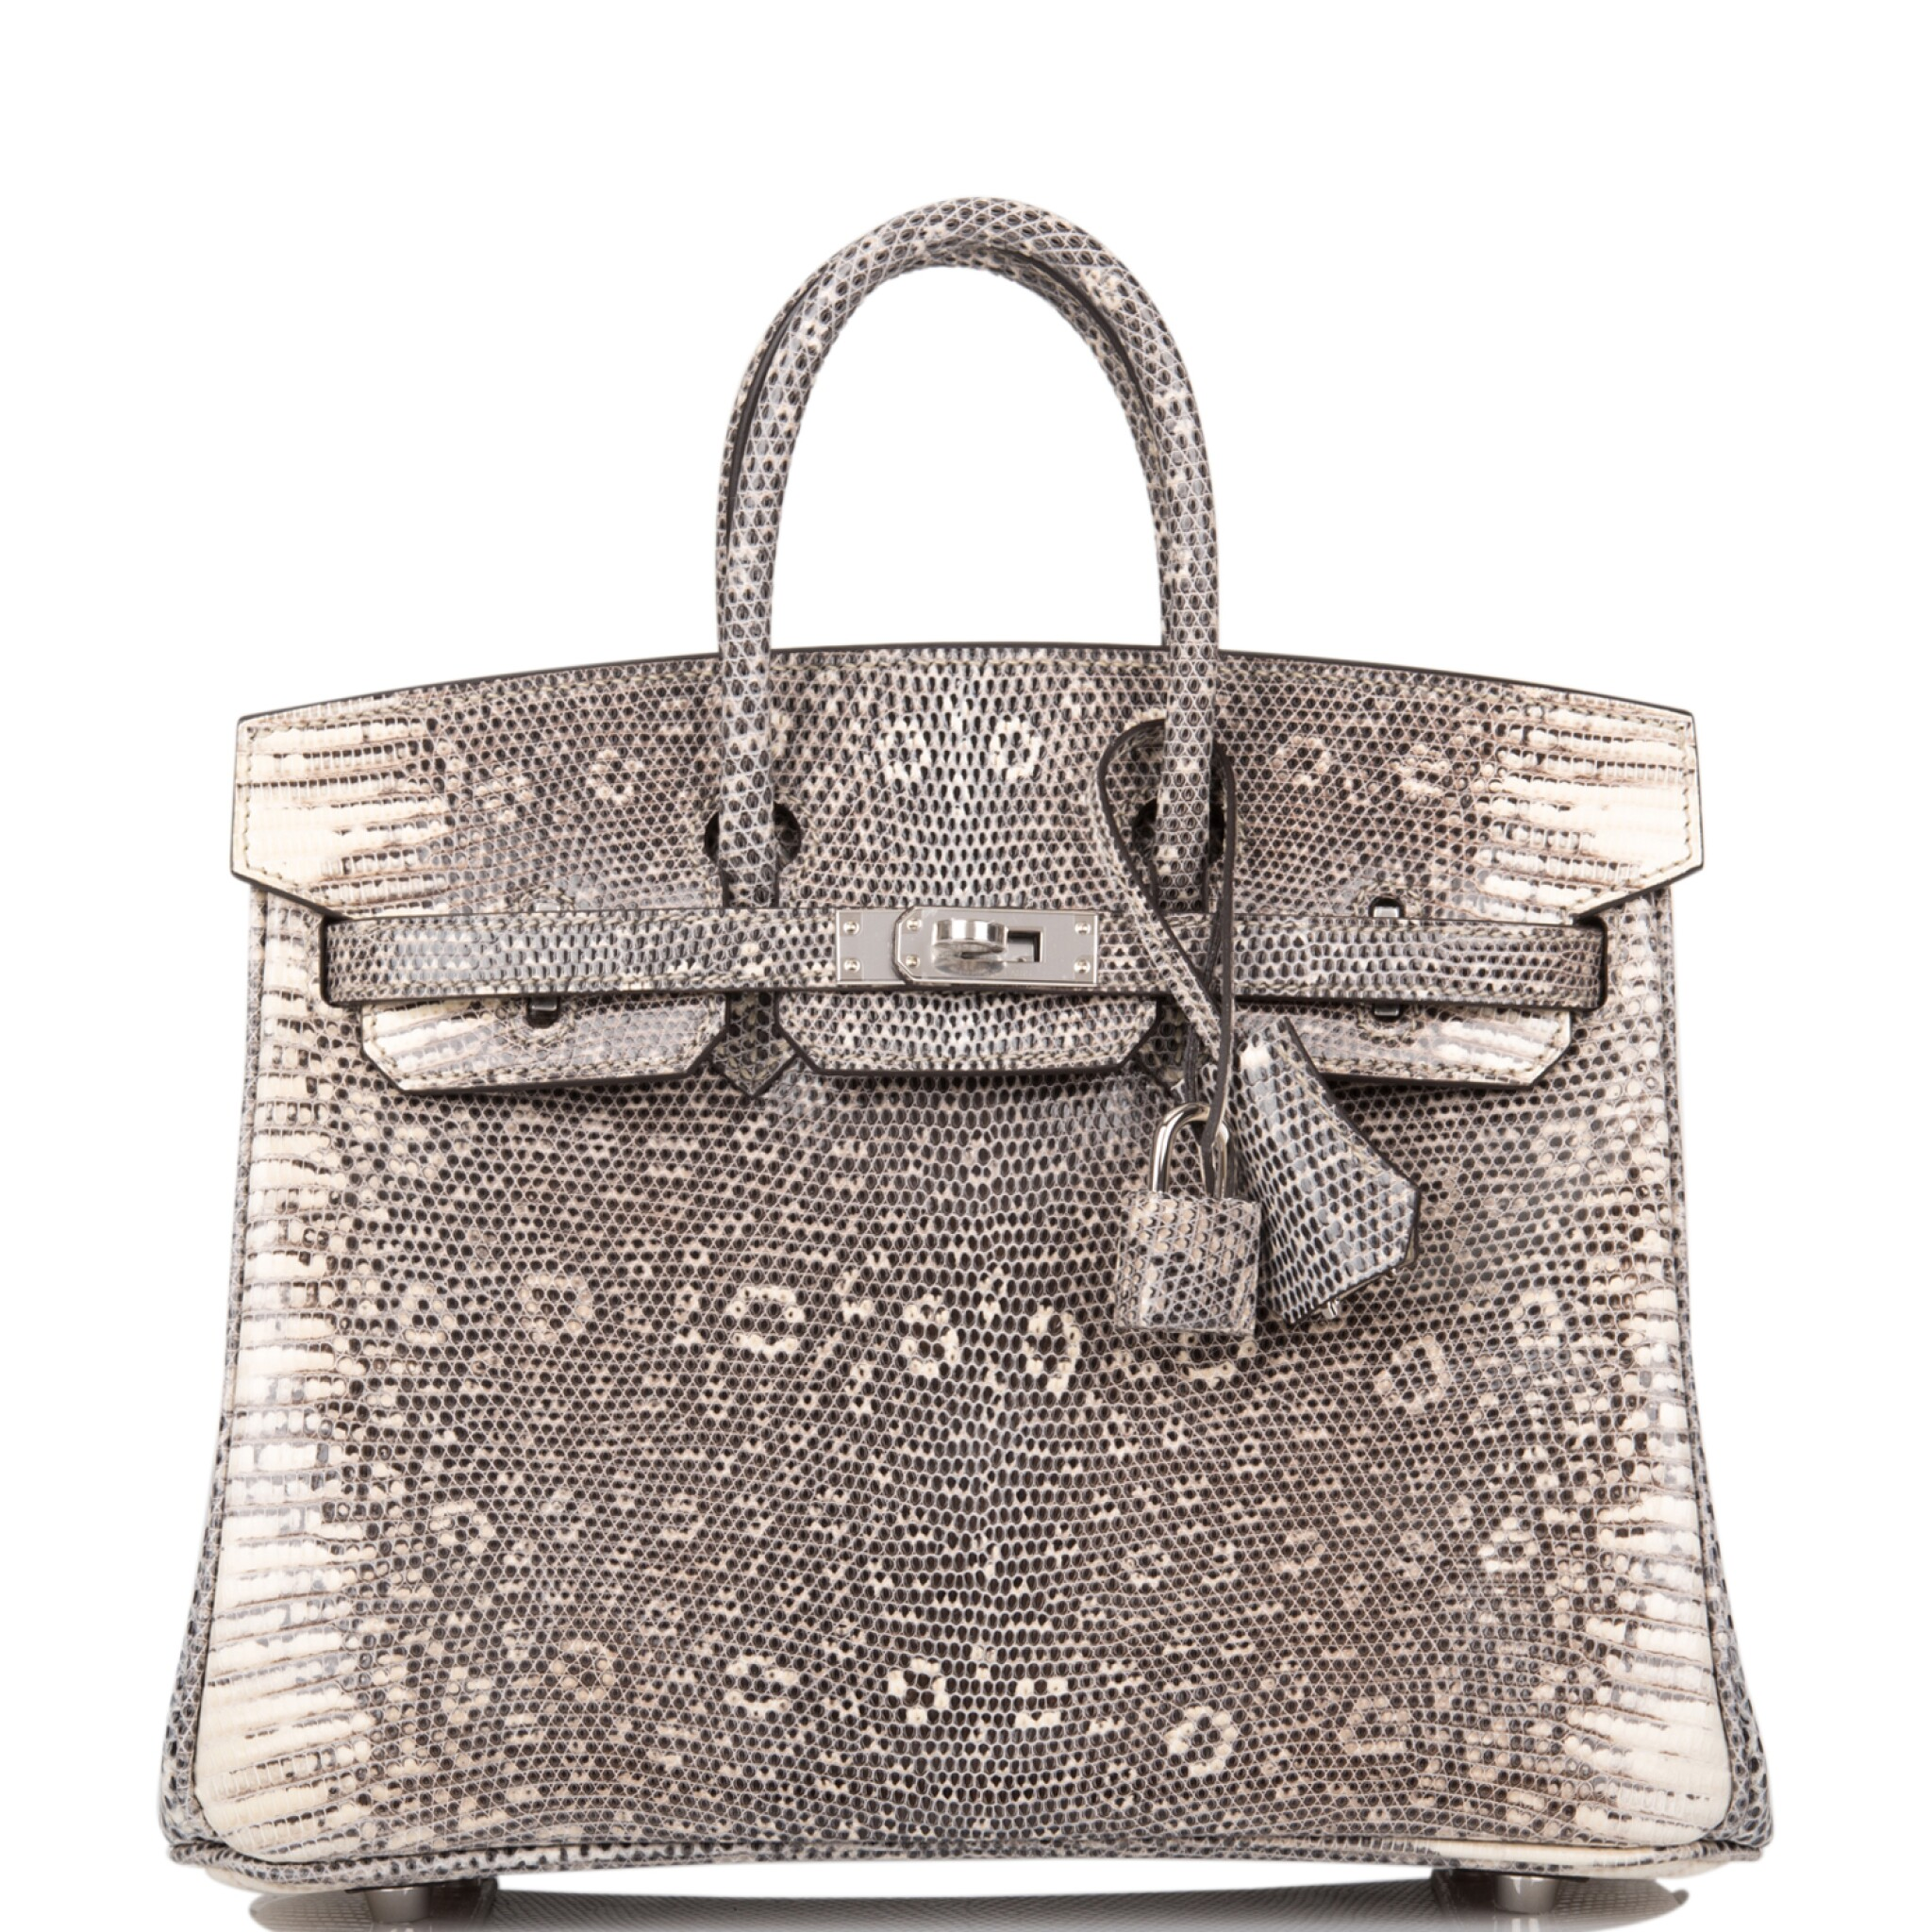 View 1 of Lot 2. Hermès Ombre Birkin 25cm of Varanus Salvator Lizard with Palladium Hardware.